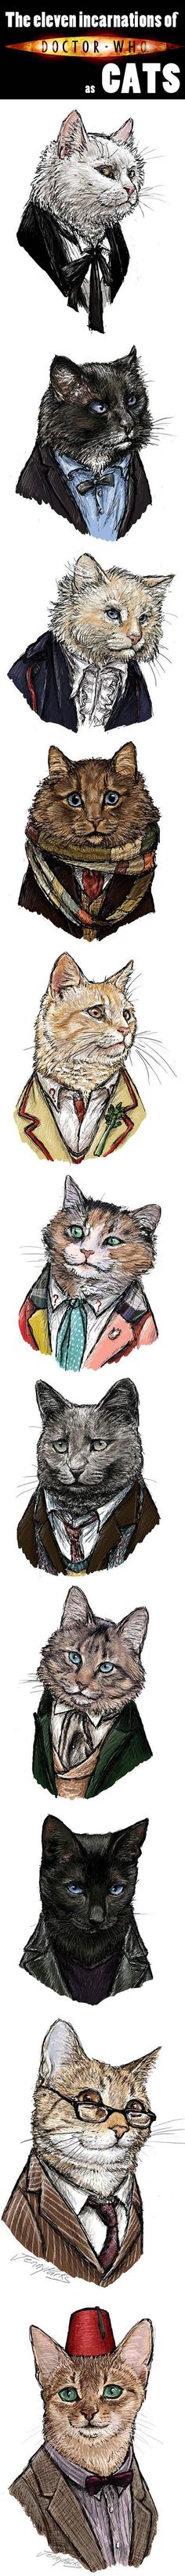 Two of my favorite things combined. Doctor Who incarnations, and cats. YES. Just, YES.